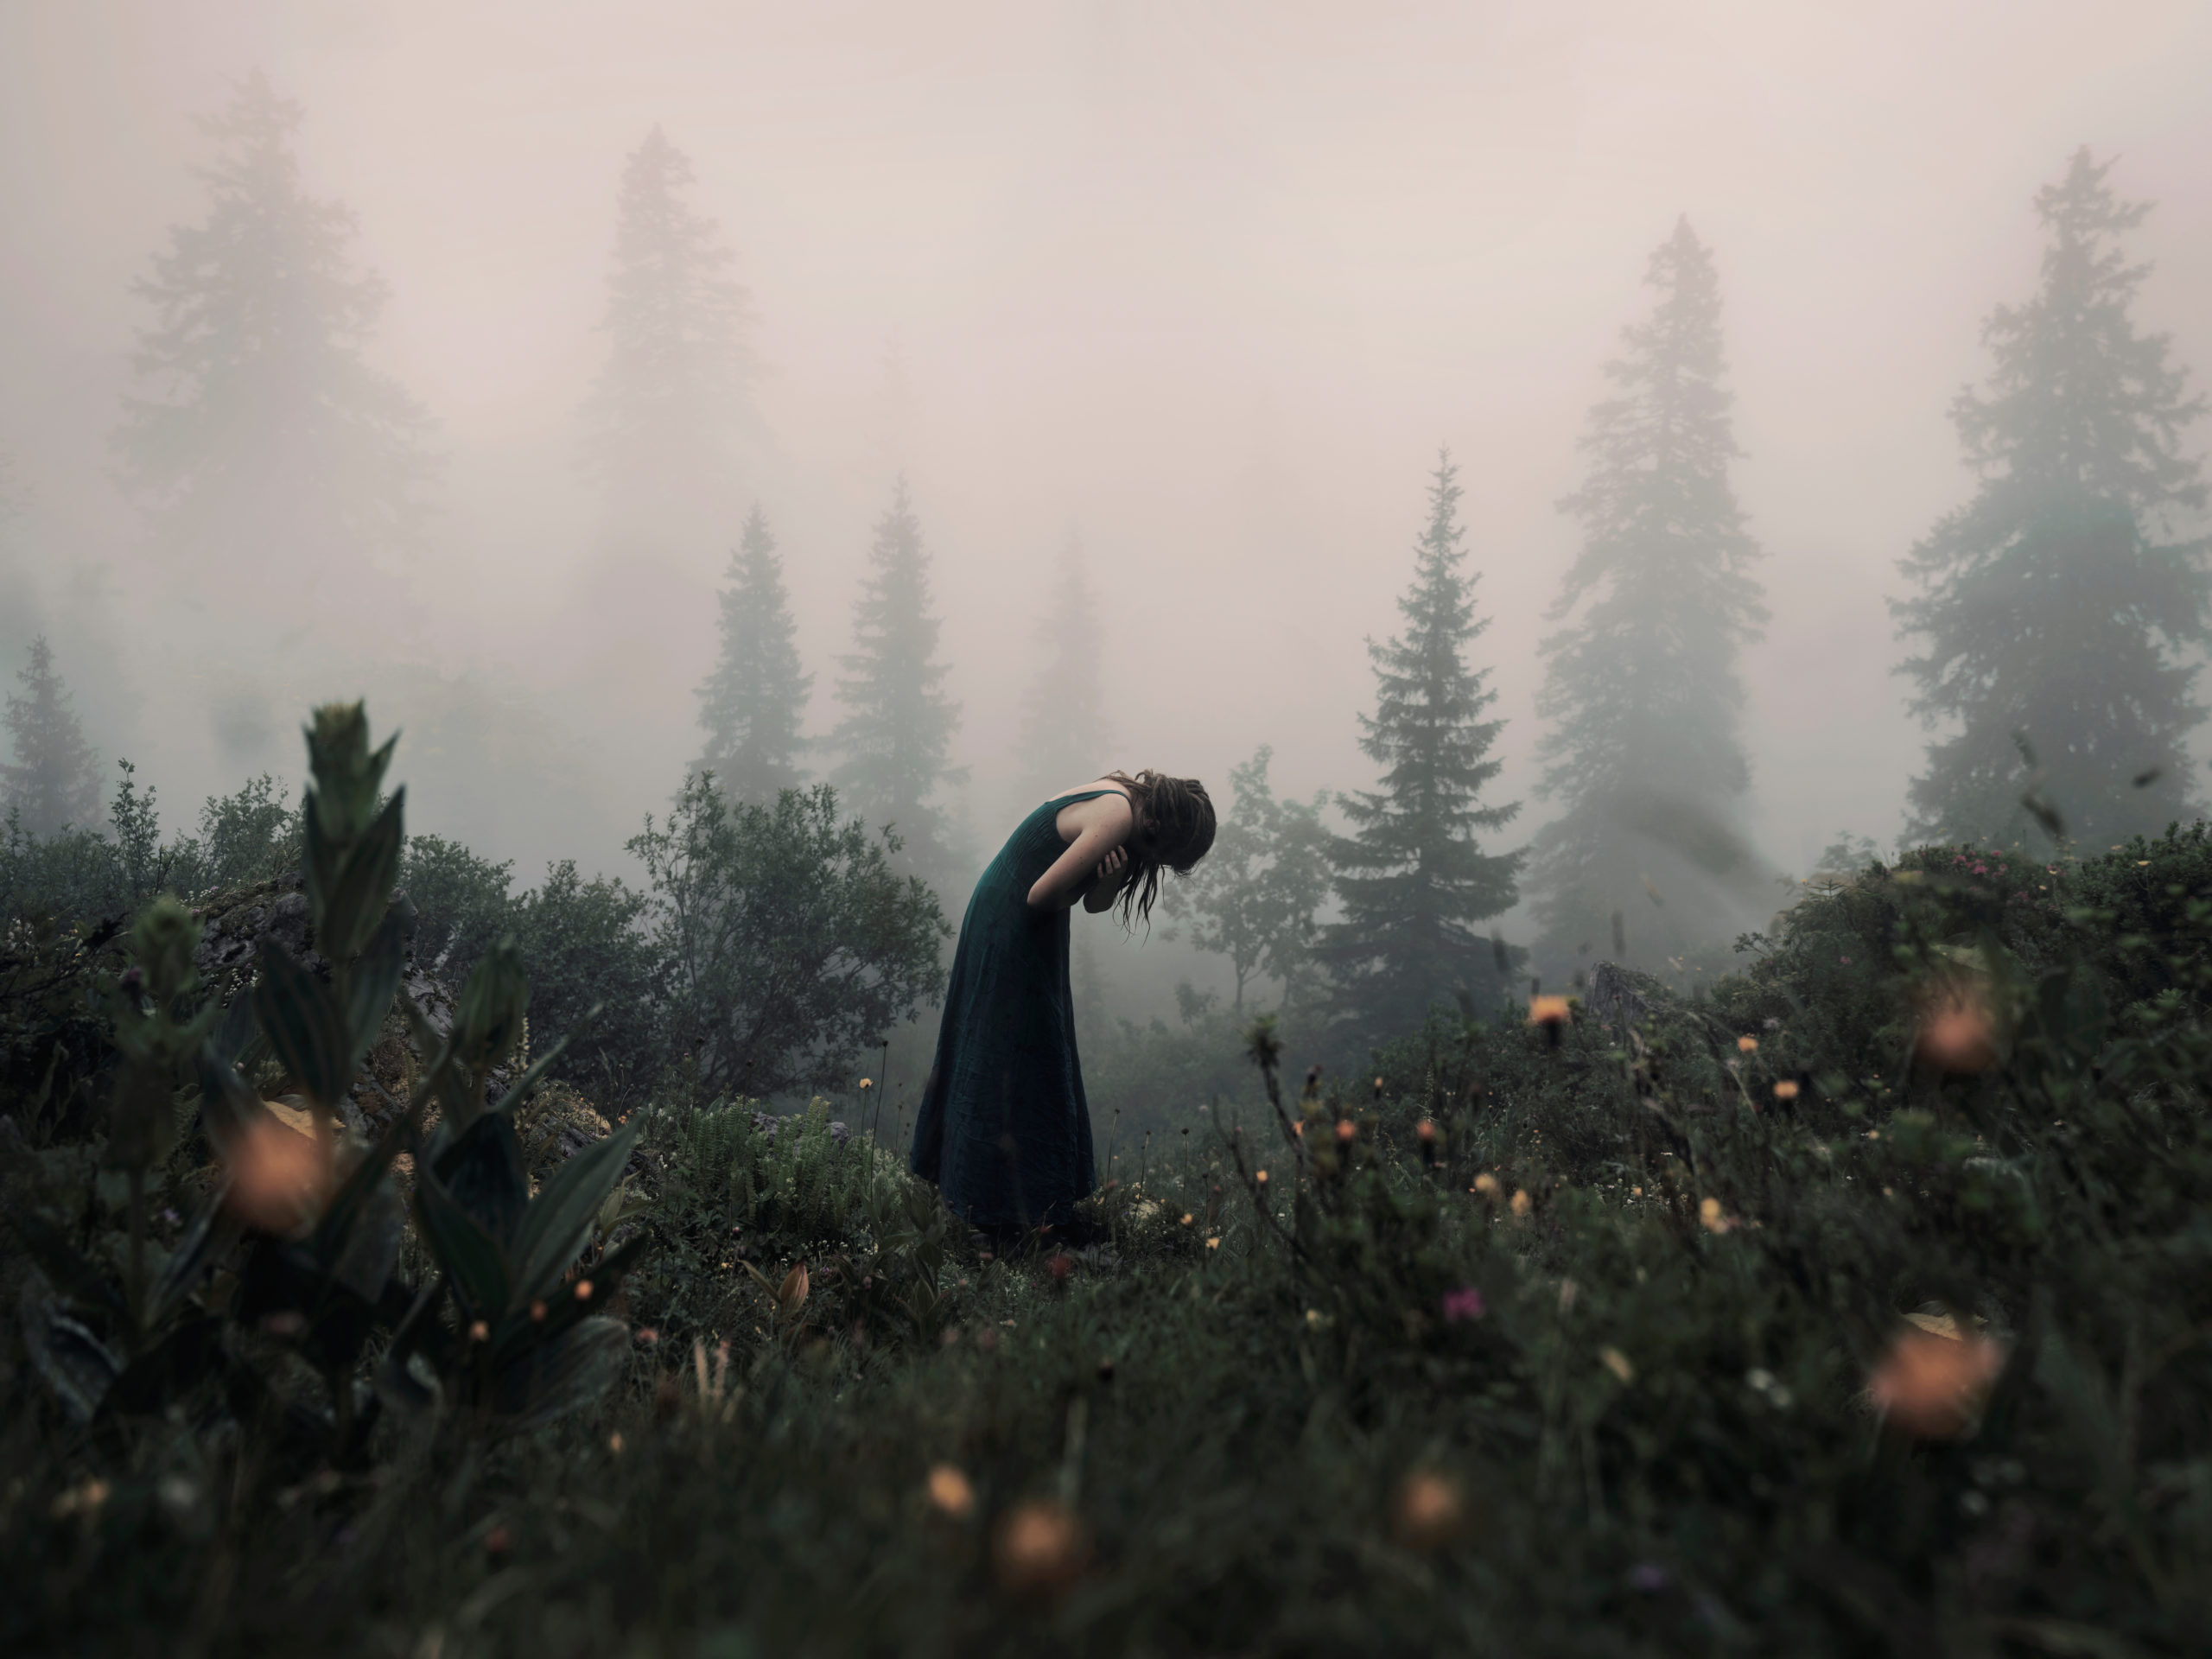 Emotional self portrait showing a woman who appears to be crying in a foggy forest landscape.